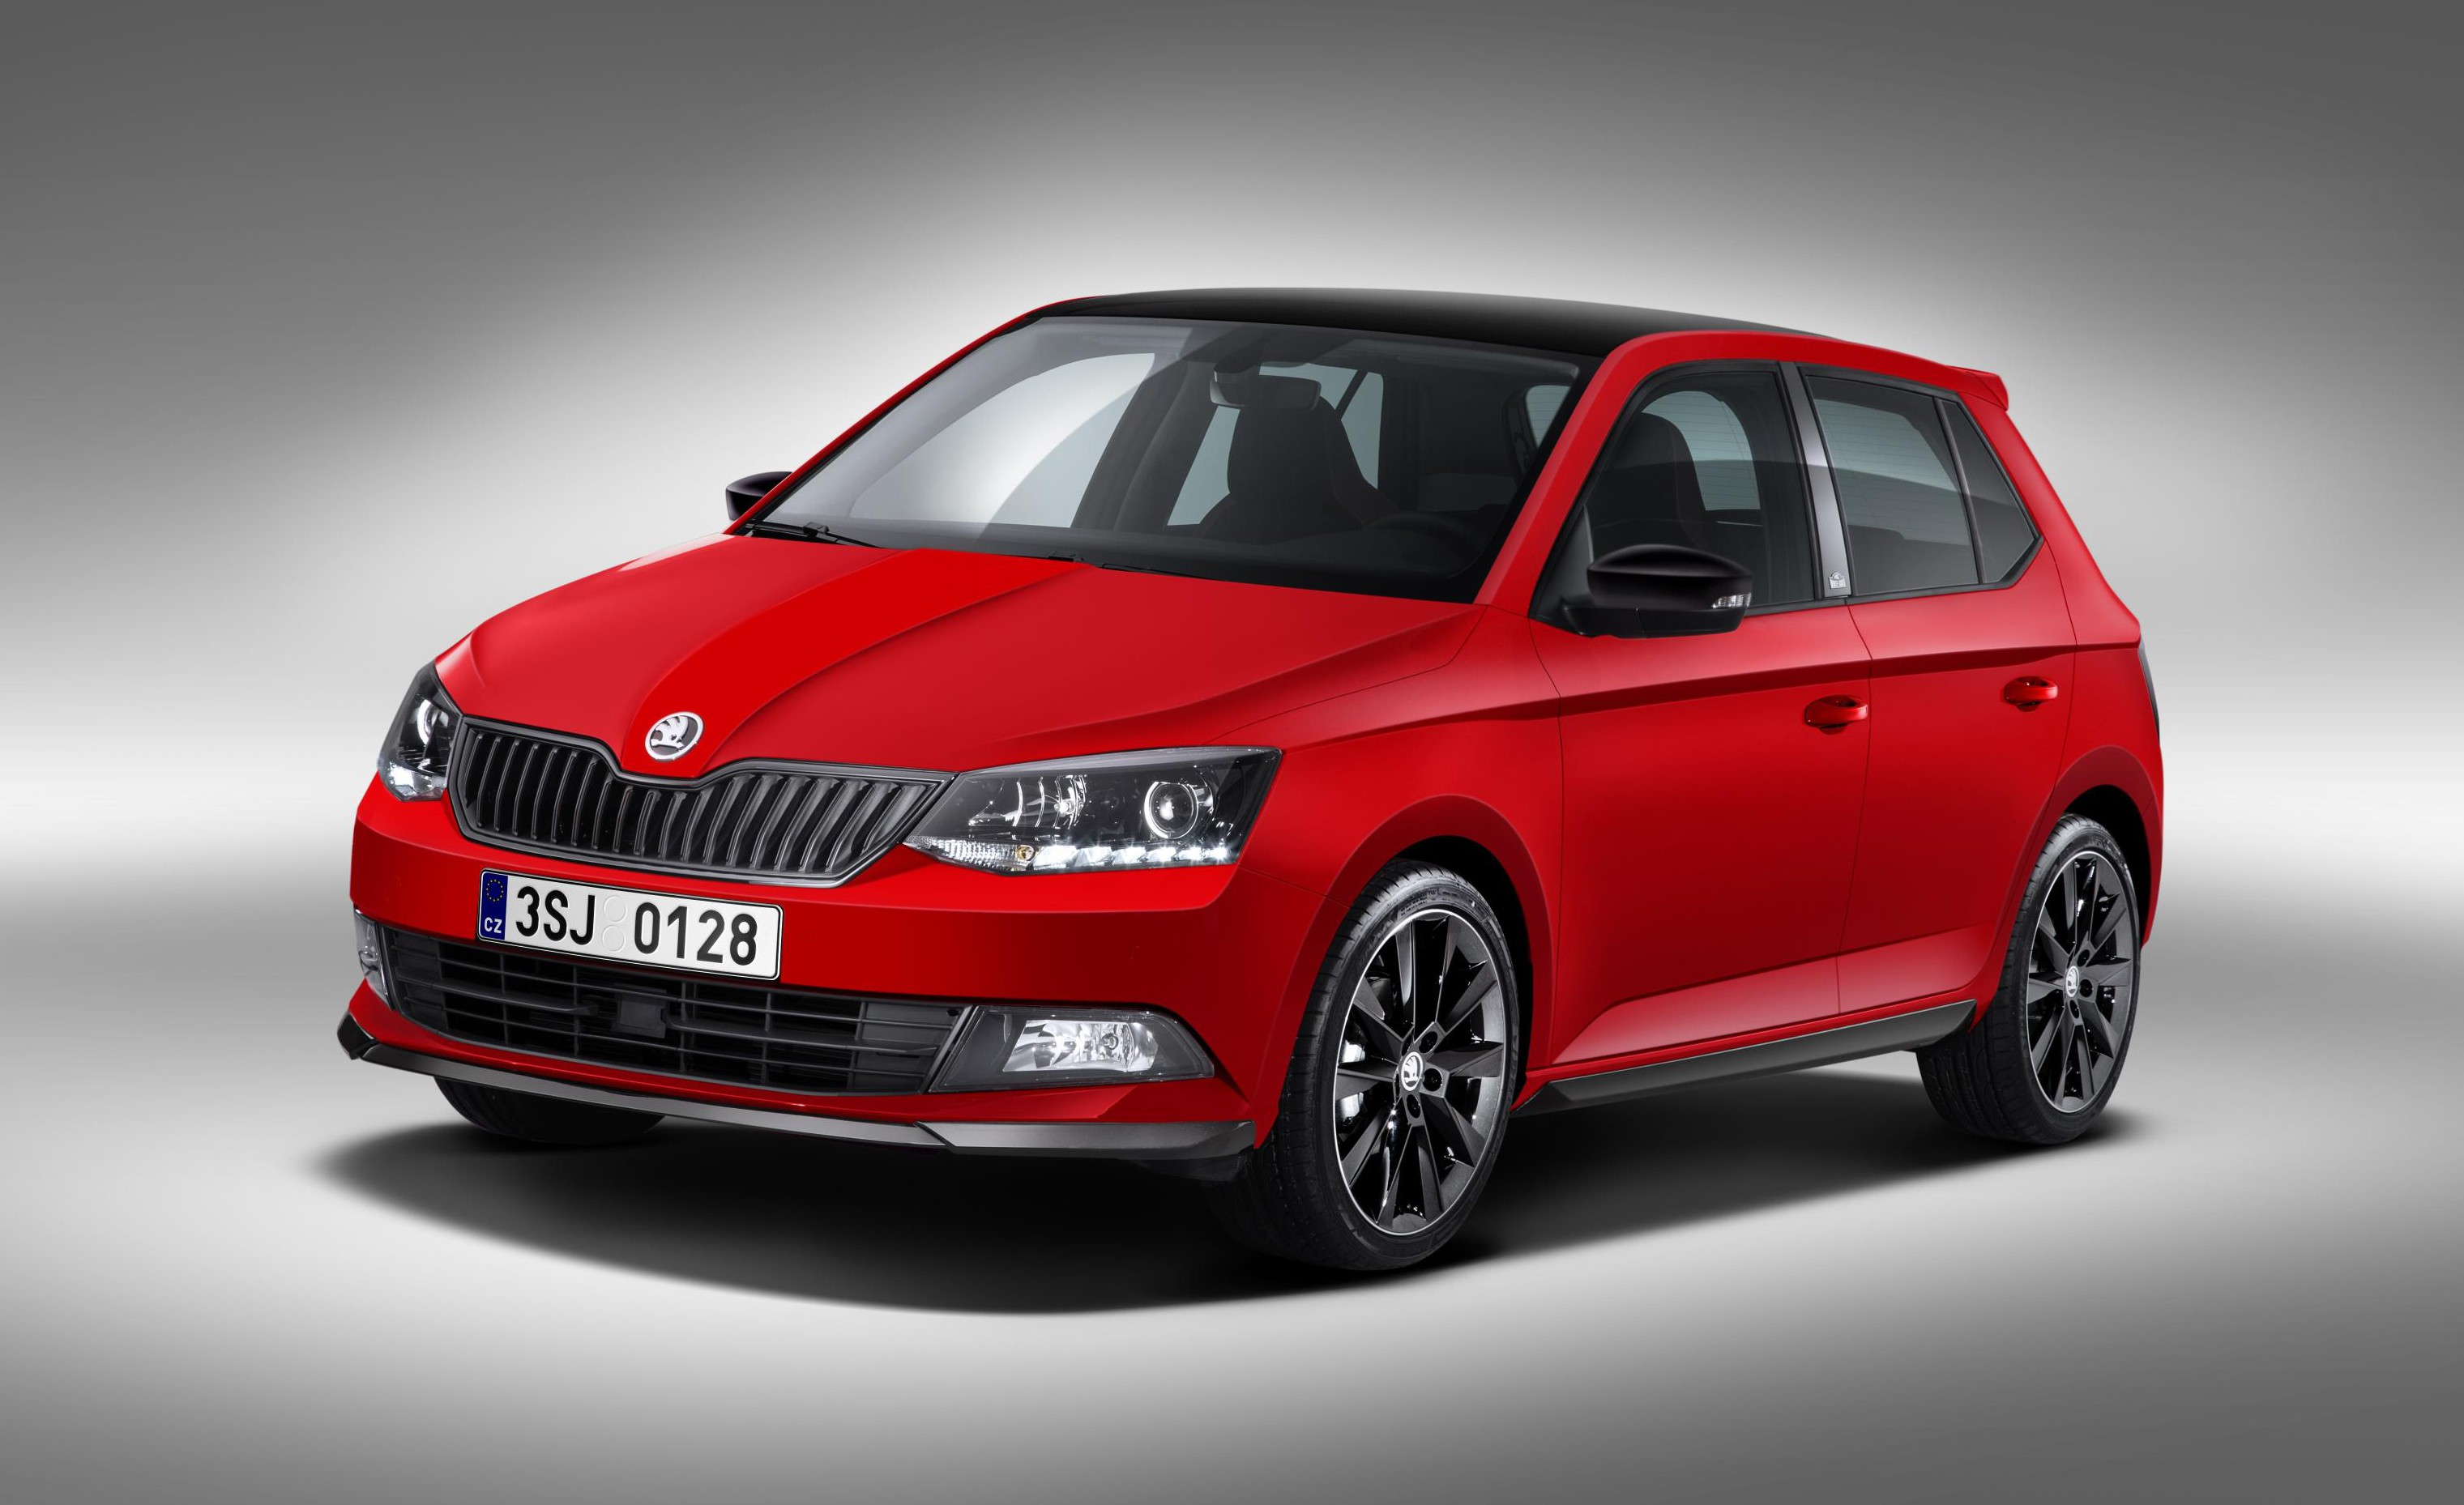 2016 skoda fabia monte carlo confirmed for australia photos 1 of 5. Black Bedroom Furniture Sets. Home Design Ideas